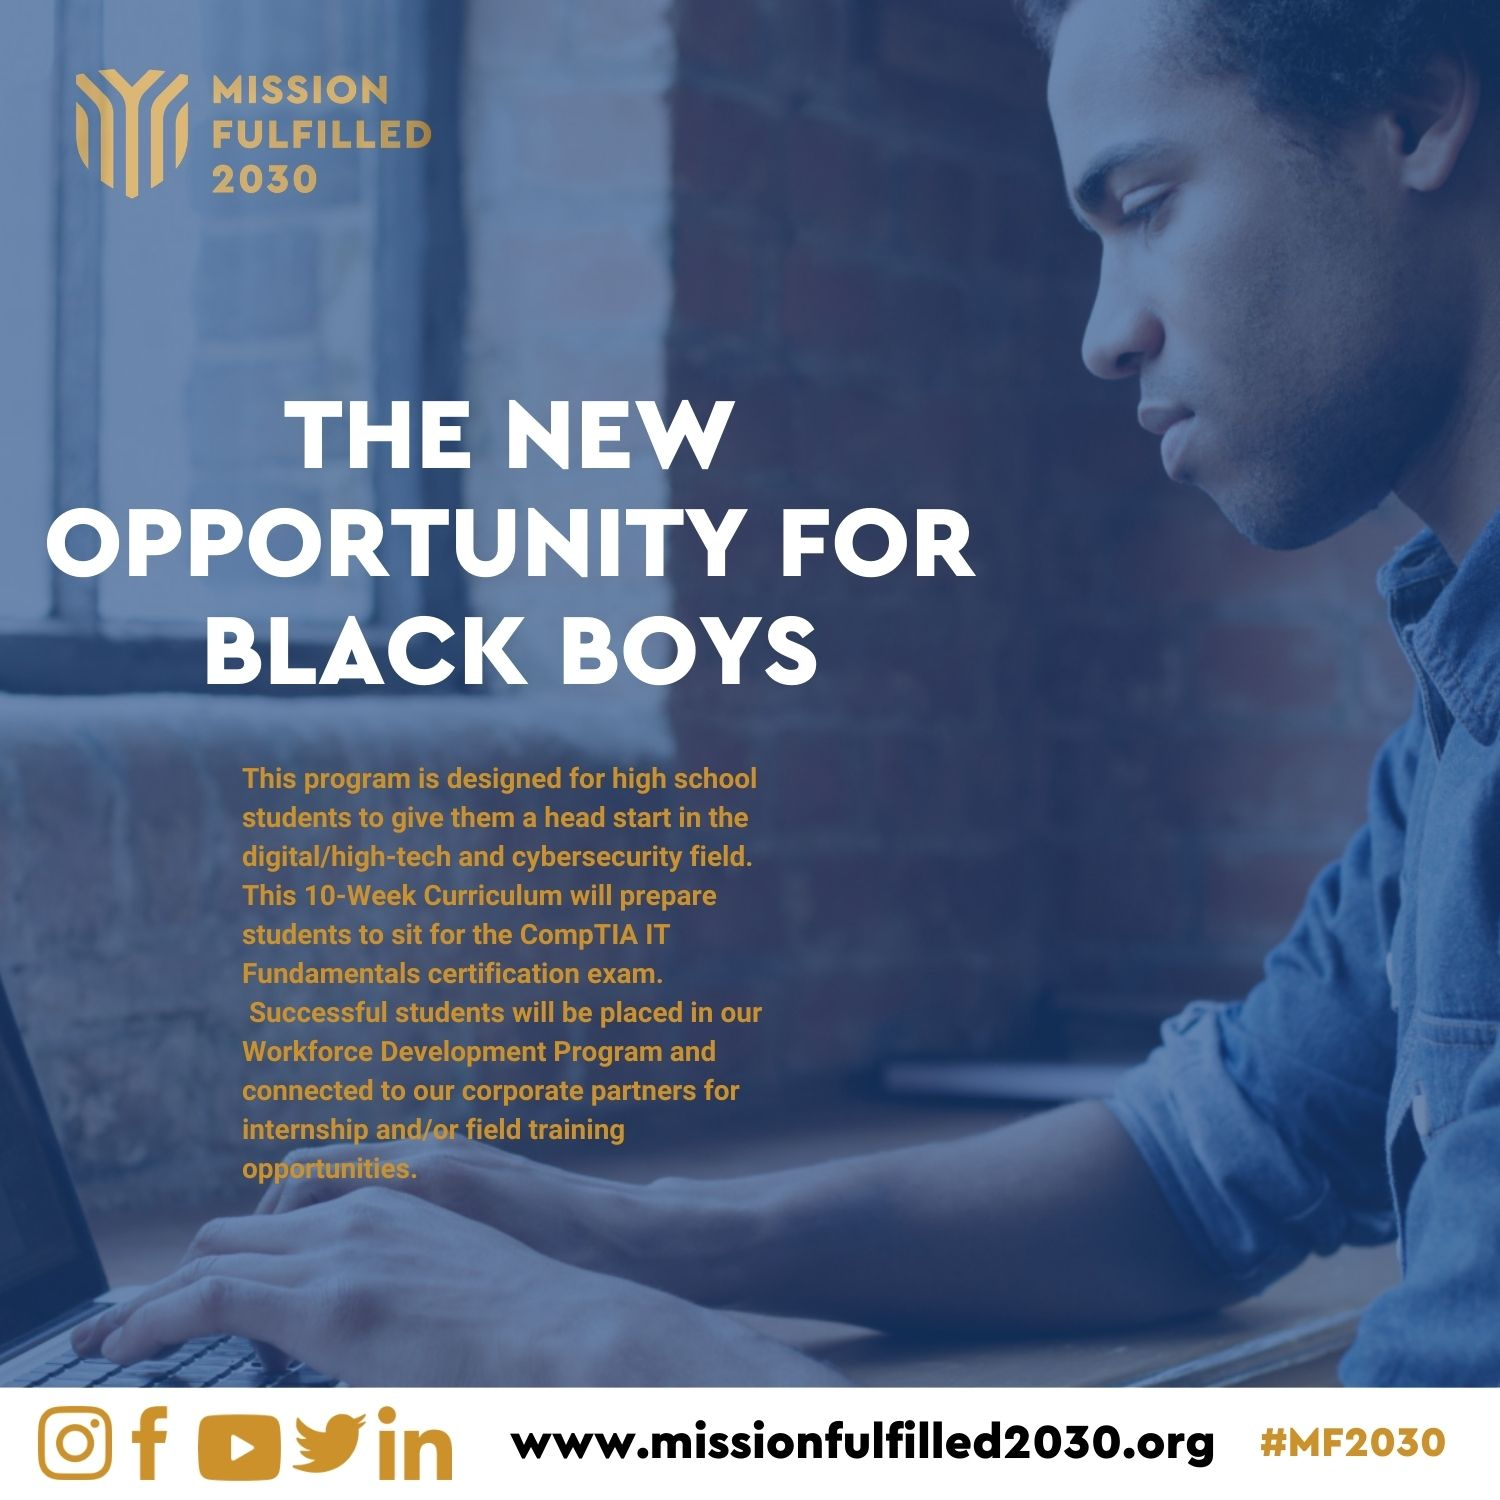 Mission Fulfilled 2030 New Opportunity for Black Boys Program